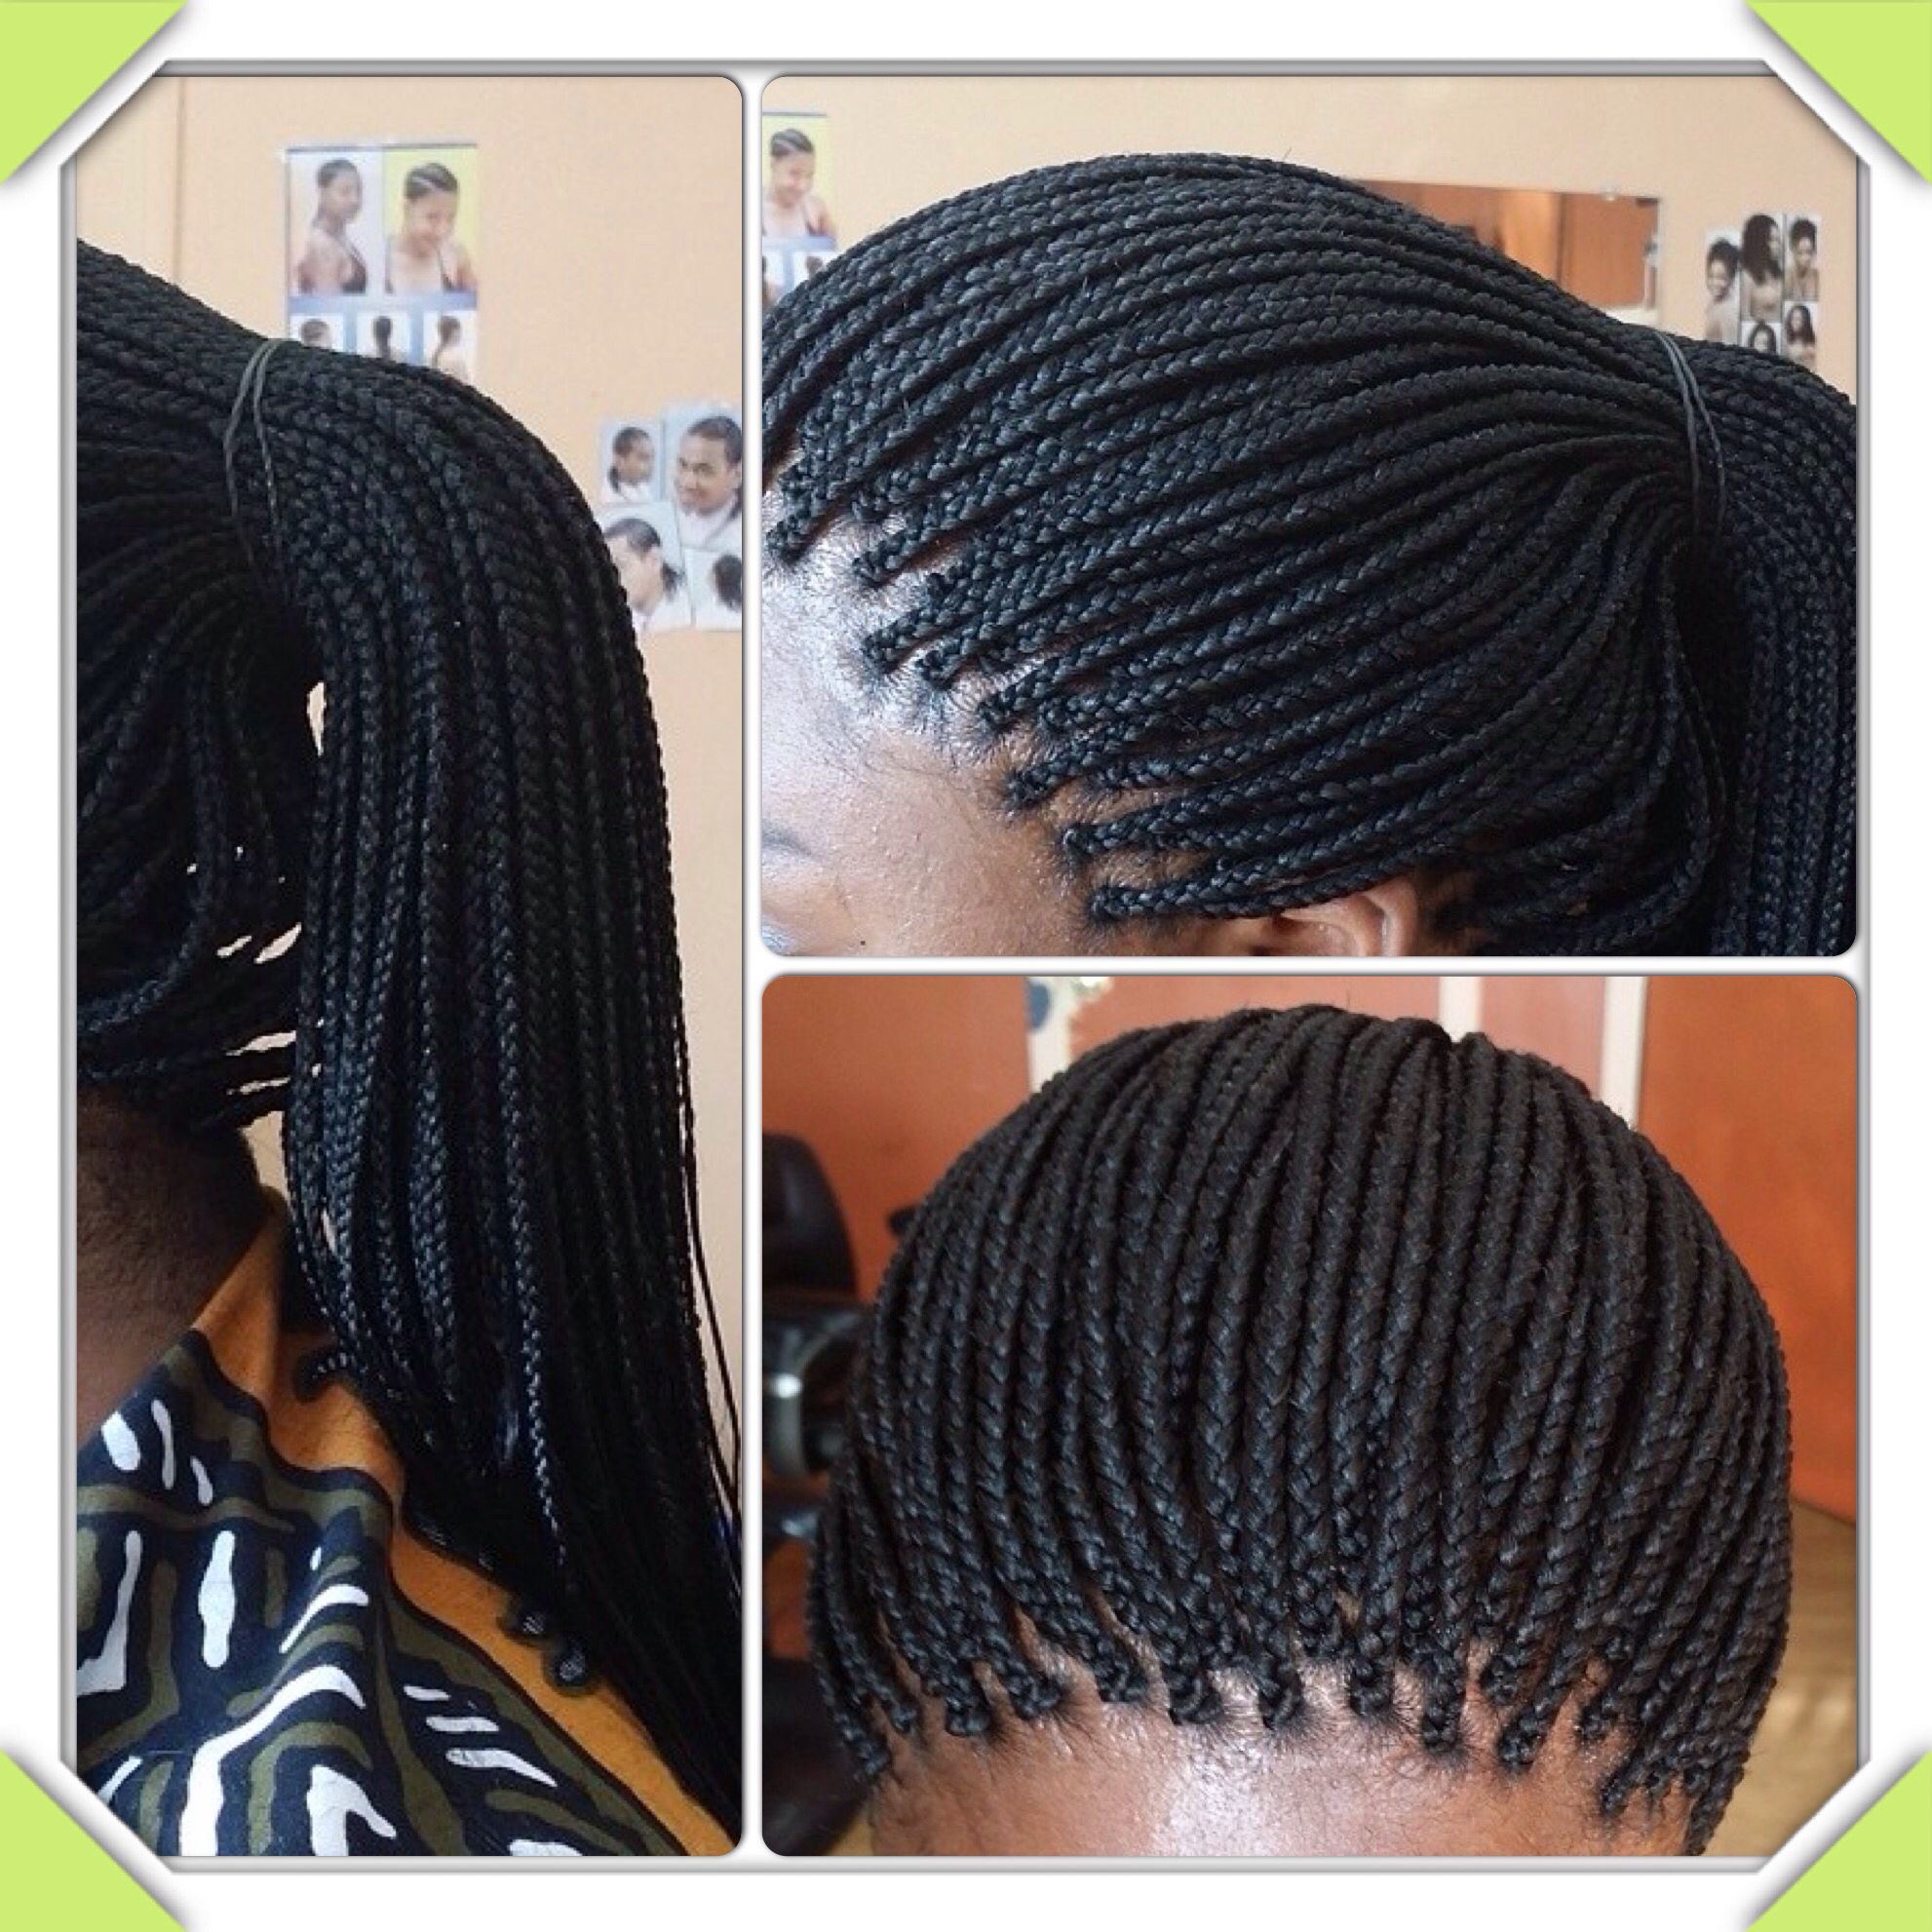 Gorgeous and Intricate Ghana Braids That You Will Love hairstyleforblackwomen.net 66